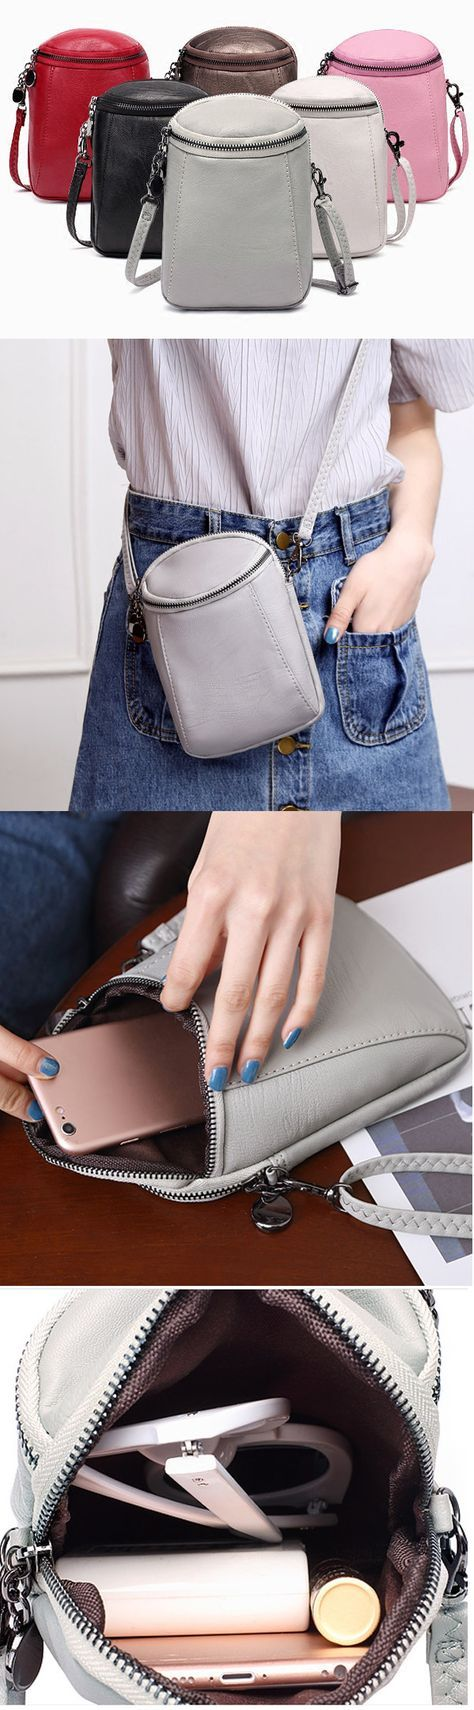 US$7.99 Woman Round Little Phone Bag Casual PU Crossbody Bag Bucket Bag Vintage Bag